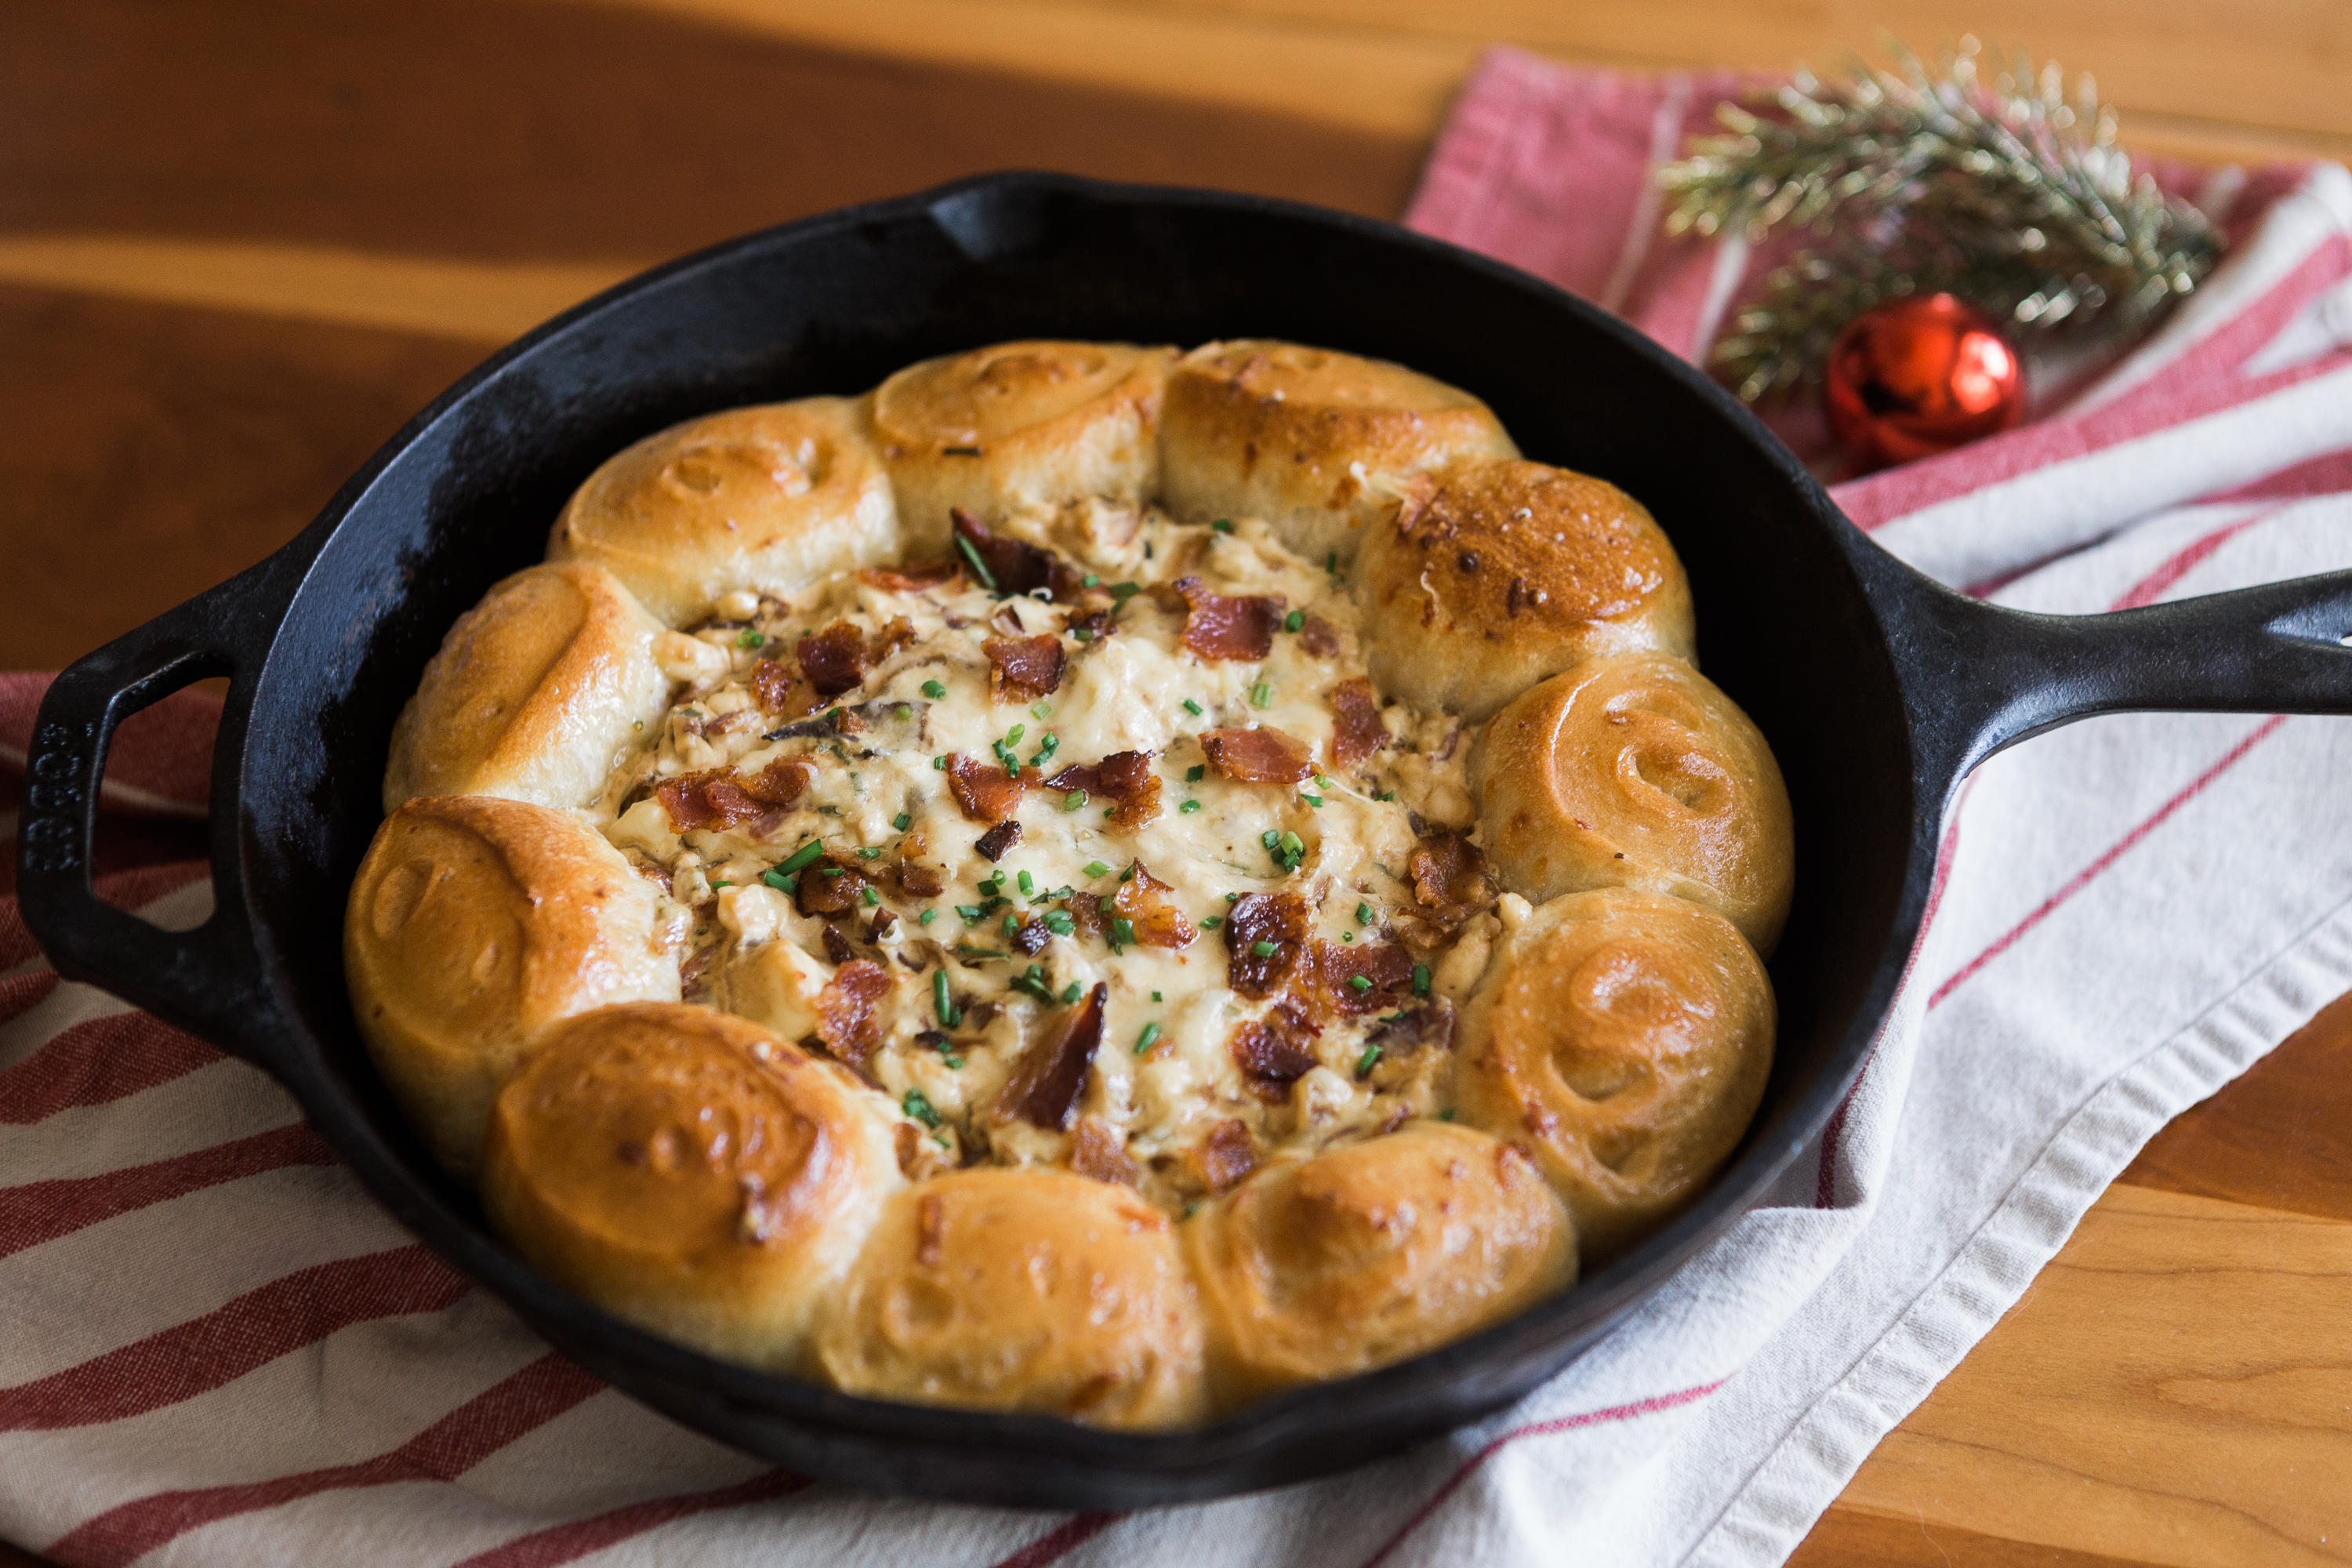 Recipe: Caramelized Onion and Bacon Wreath Dip